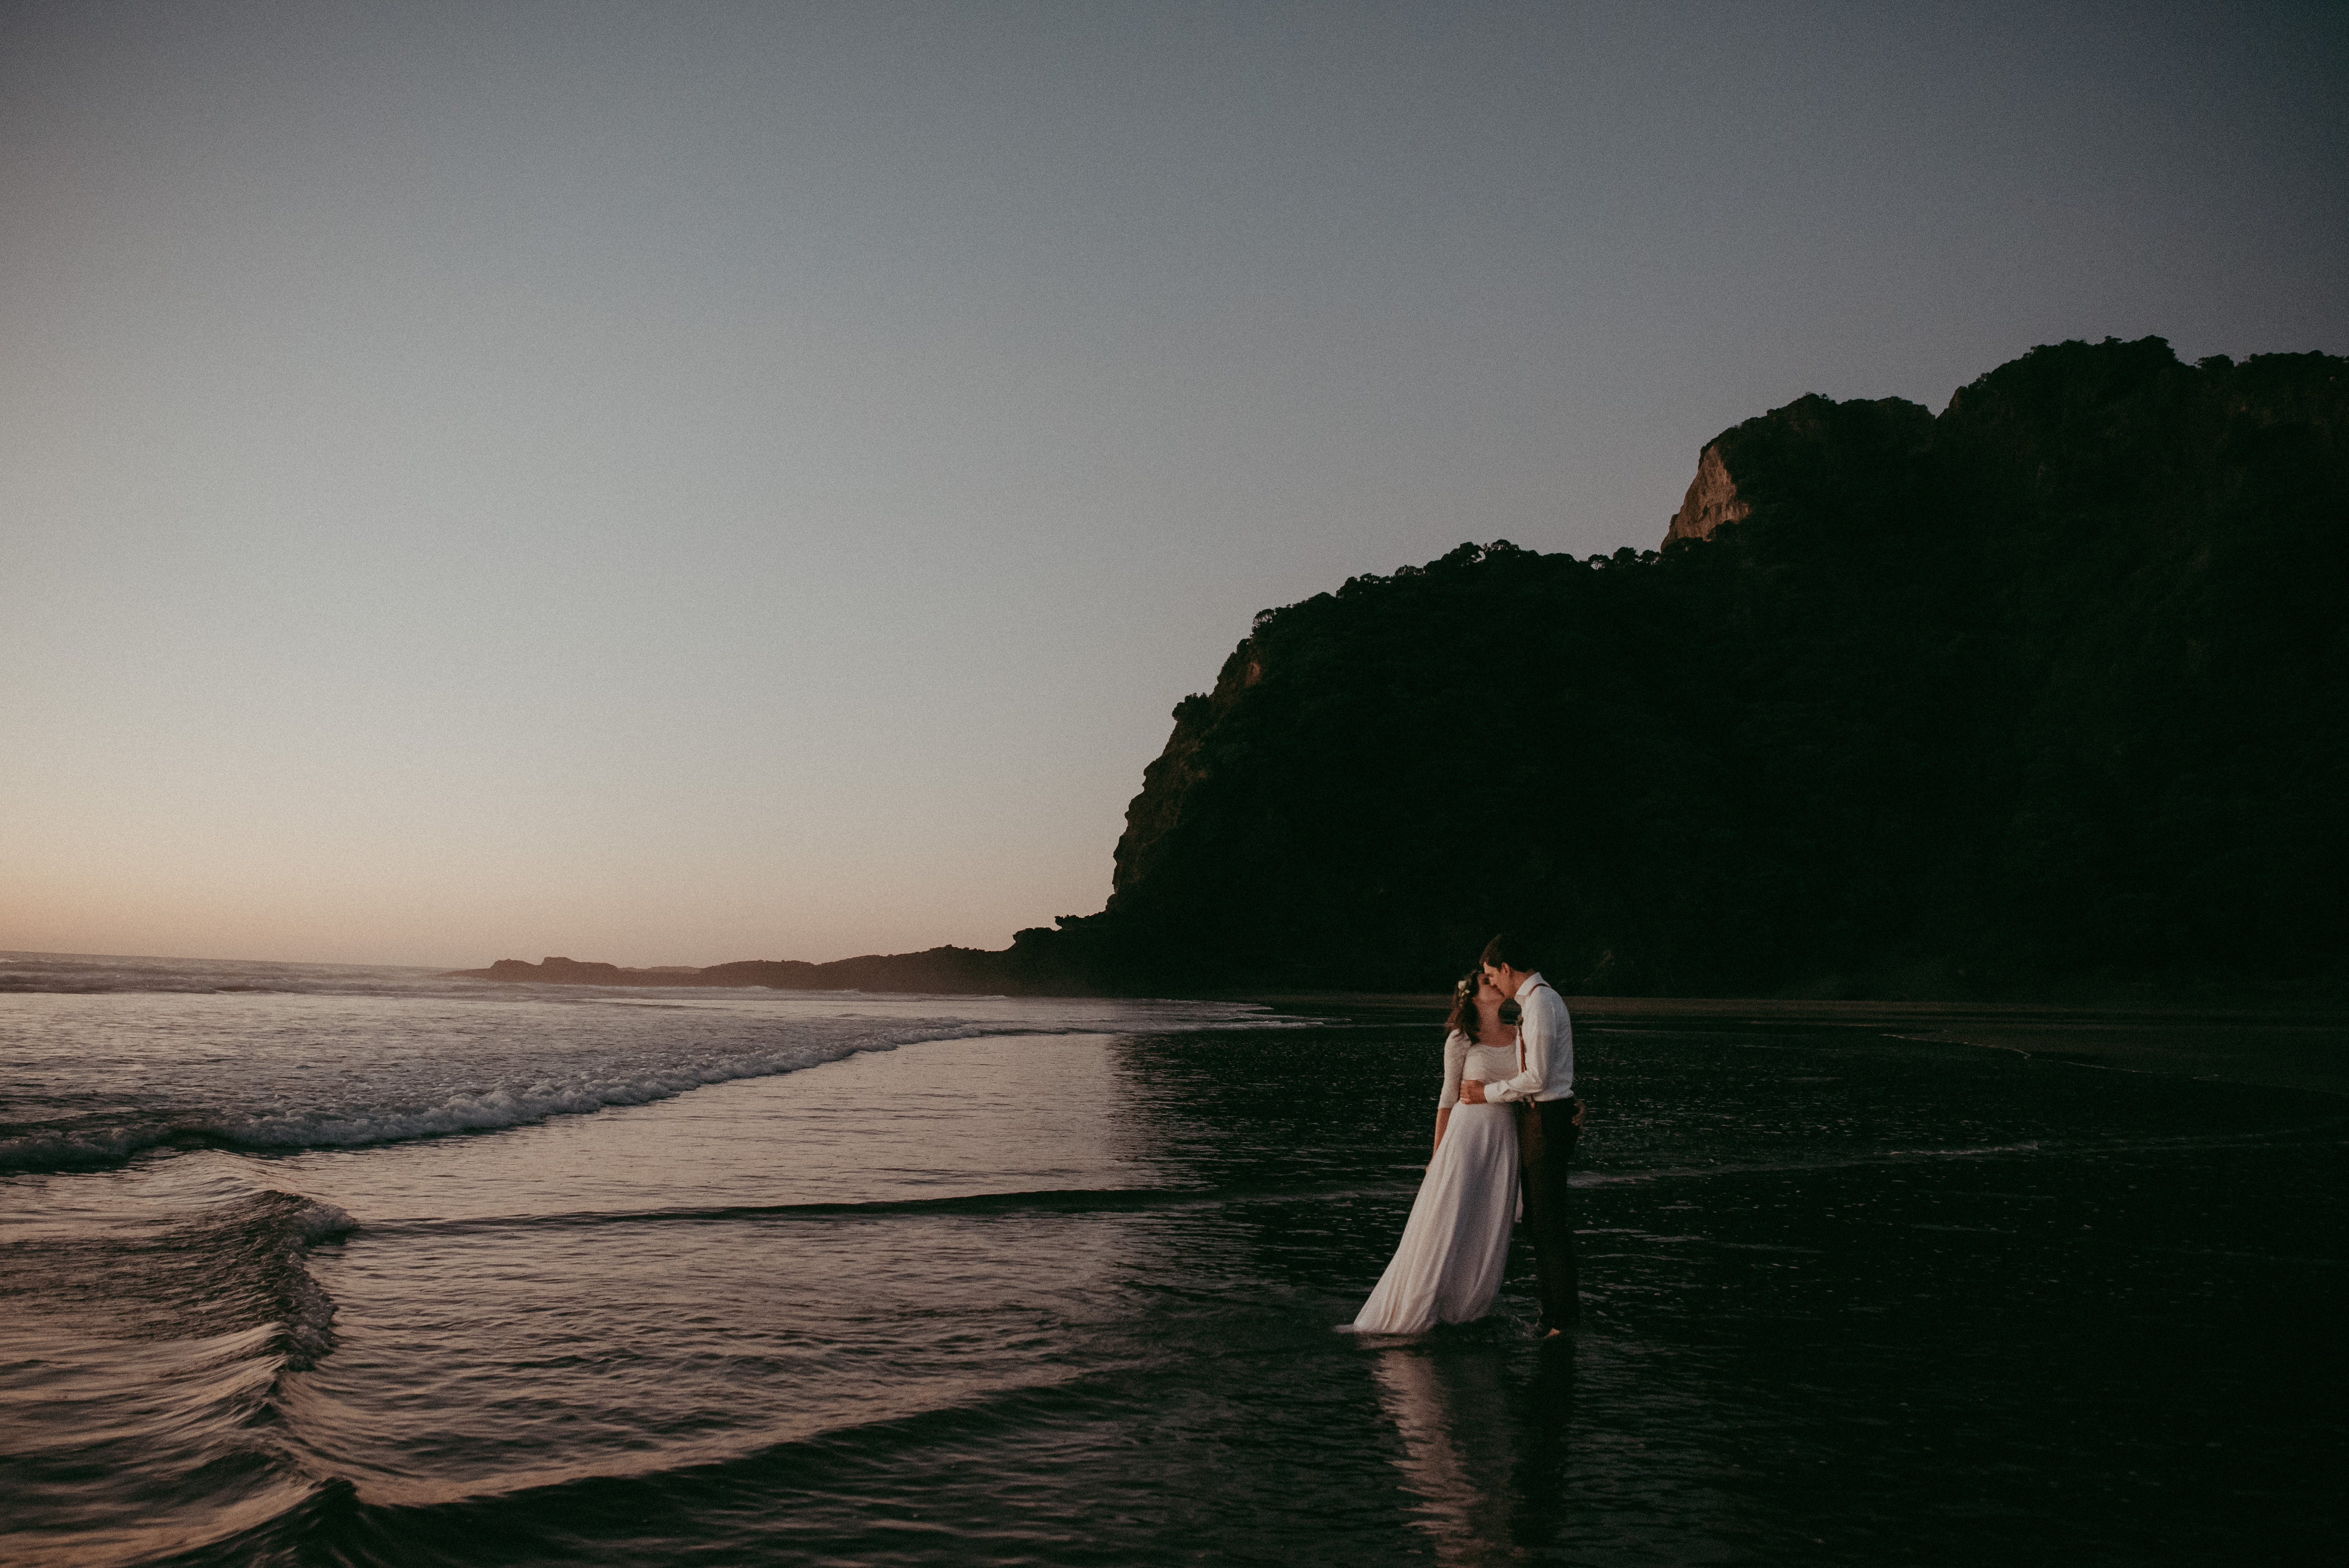 Categories: Weddings-Real Wedding: Mary & Philipp - Photography by Levien & Lens